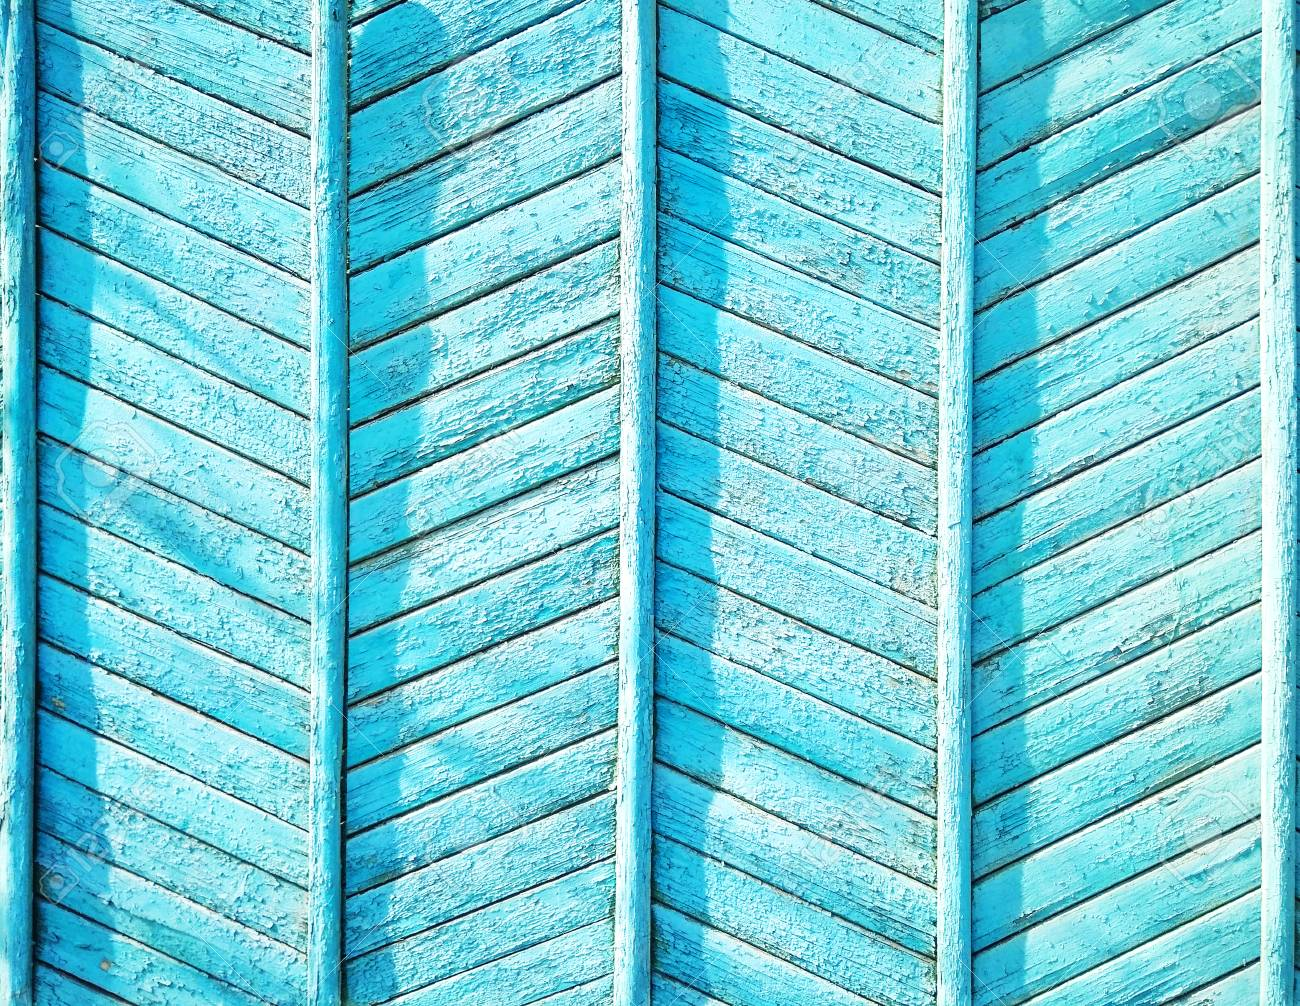 Blue Wood Textured Background Wooden Wall Or Fence With Zigzag